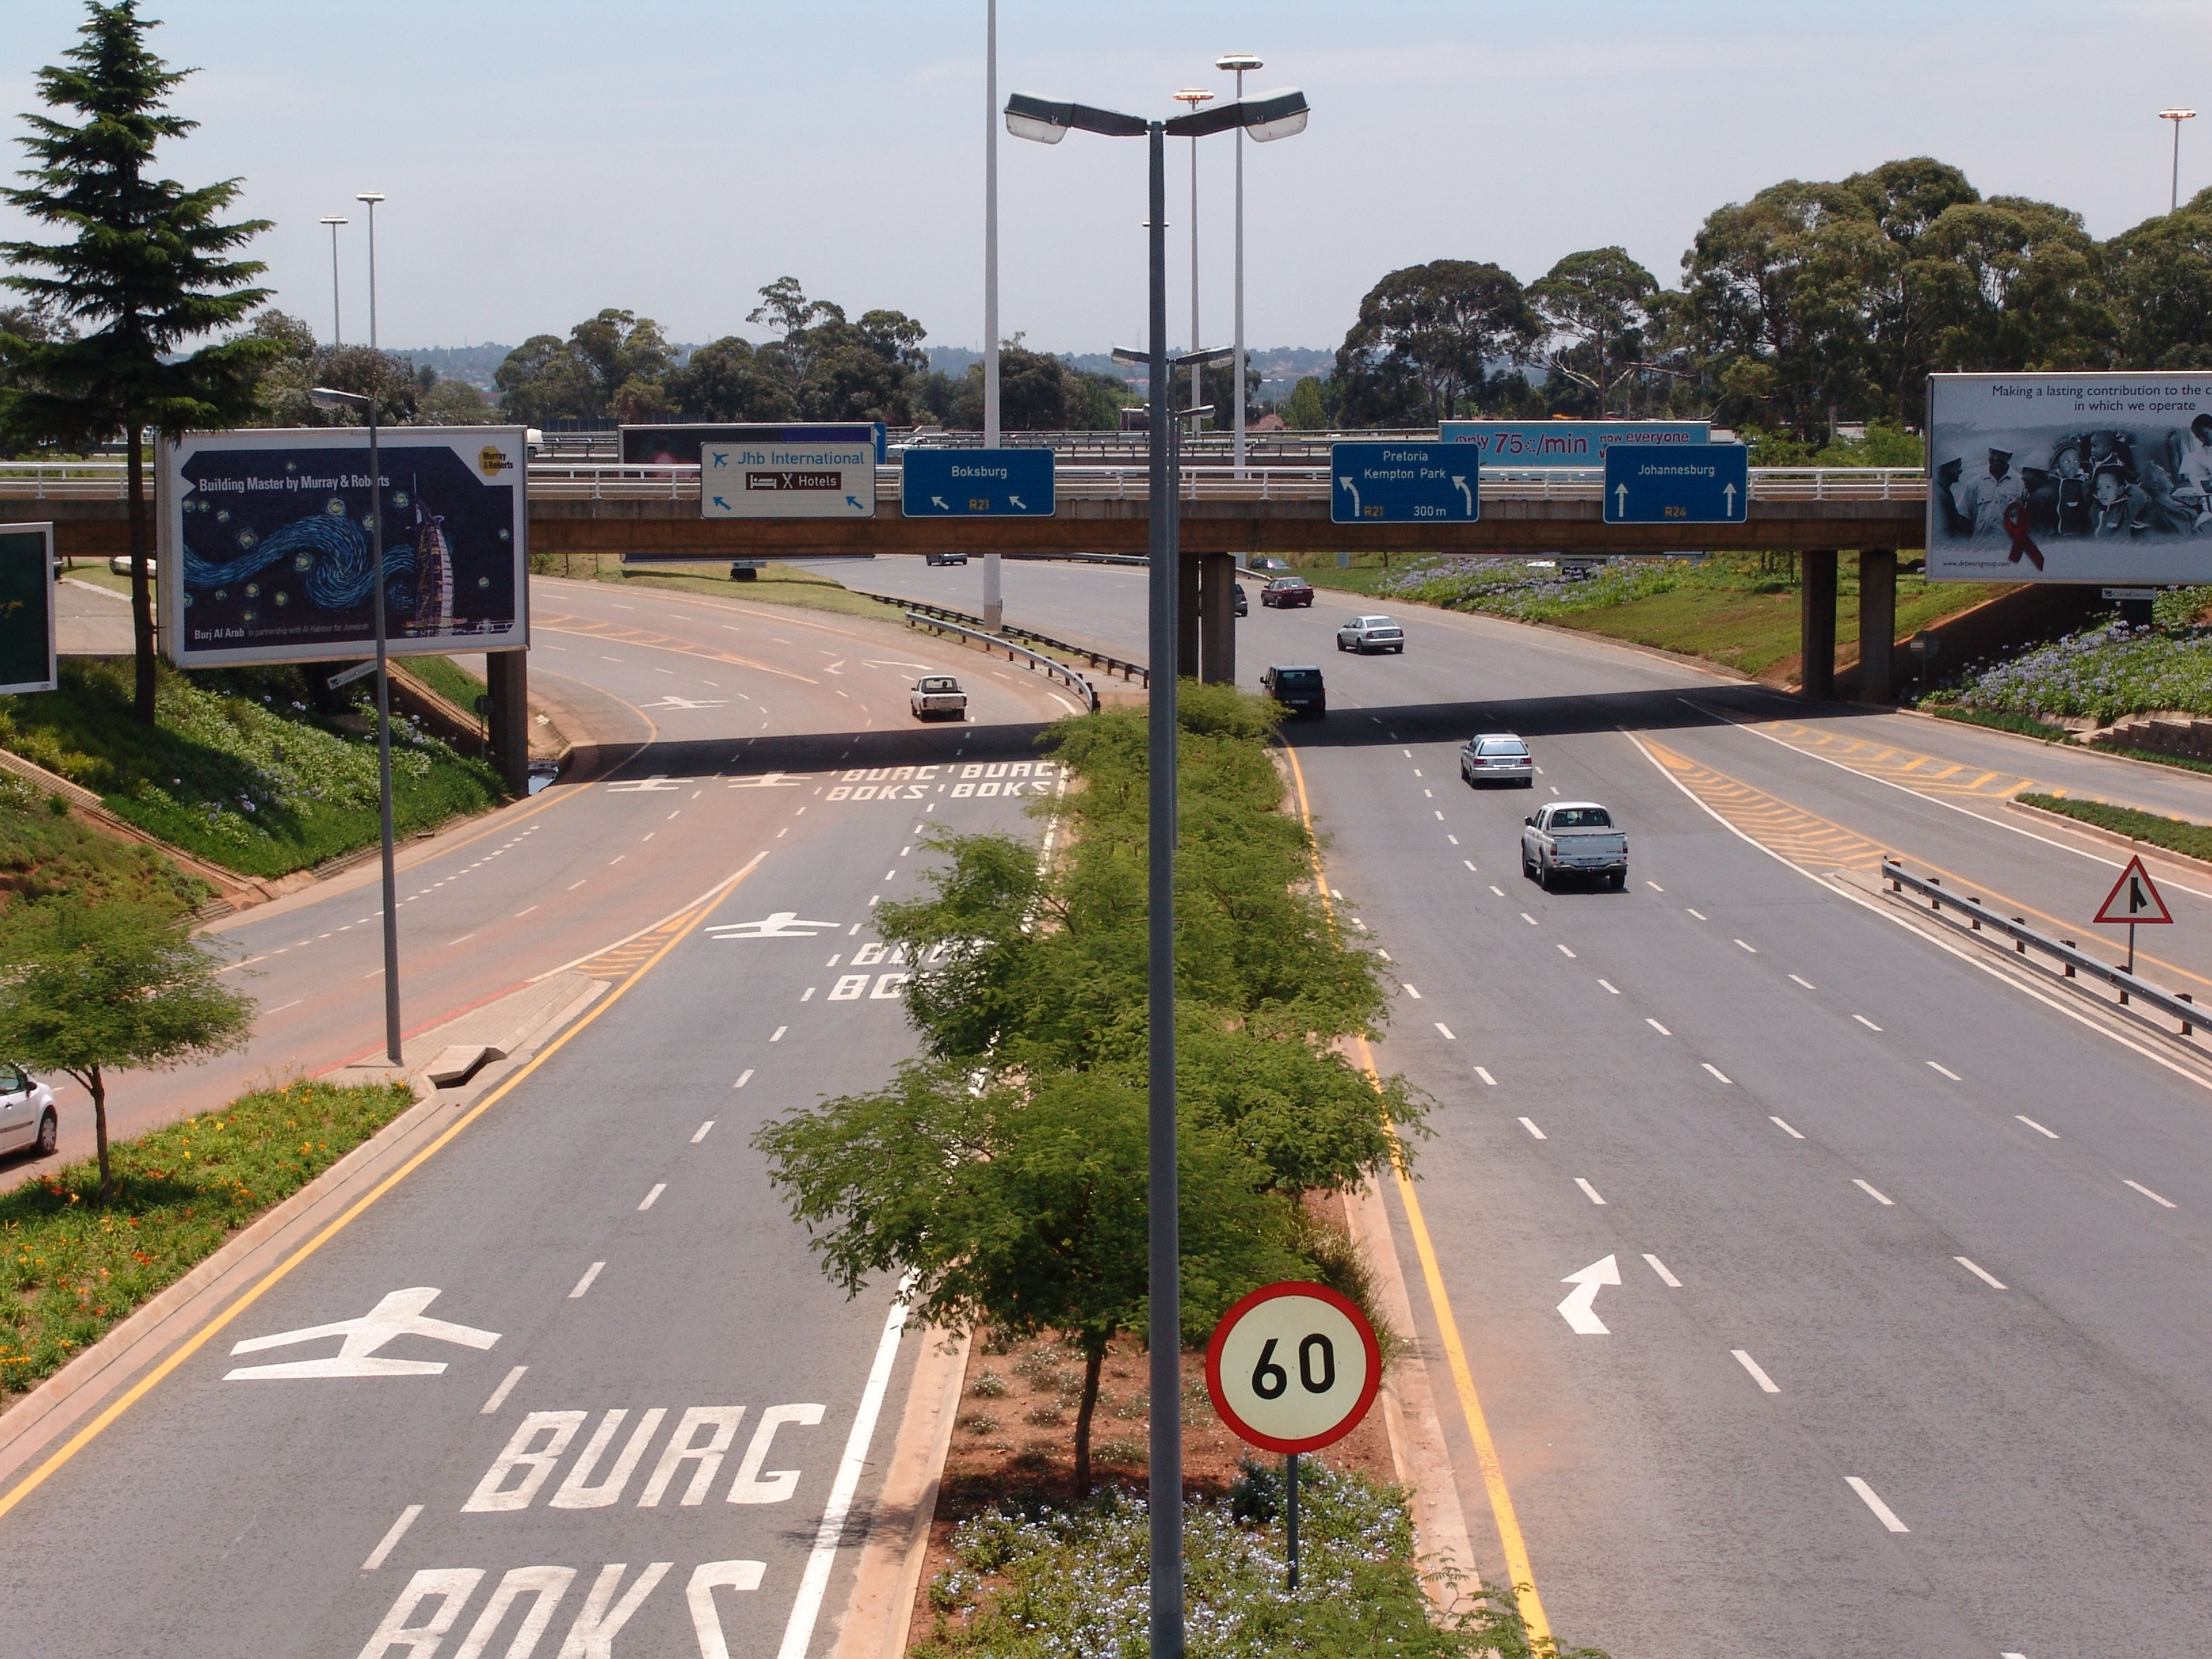 http://www.southafrica.to/transport/Airports/O-R-Tambo-International/roads-leaving-Johannesburg-airport-LARGE.JPG